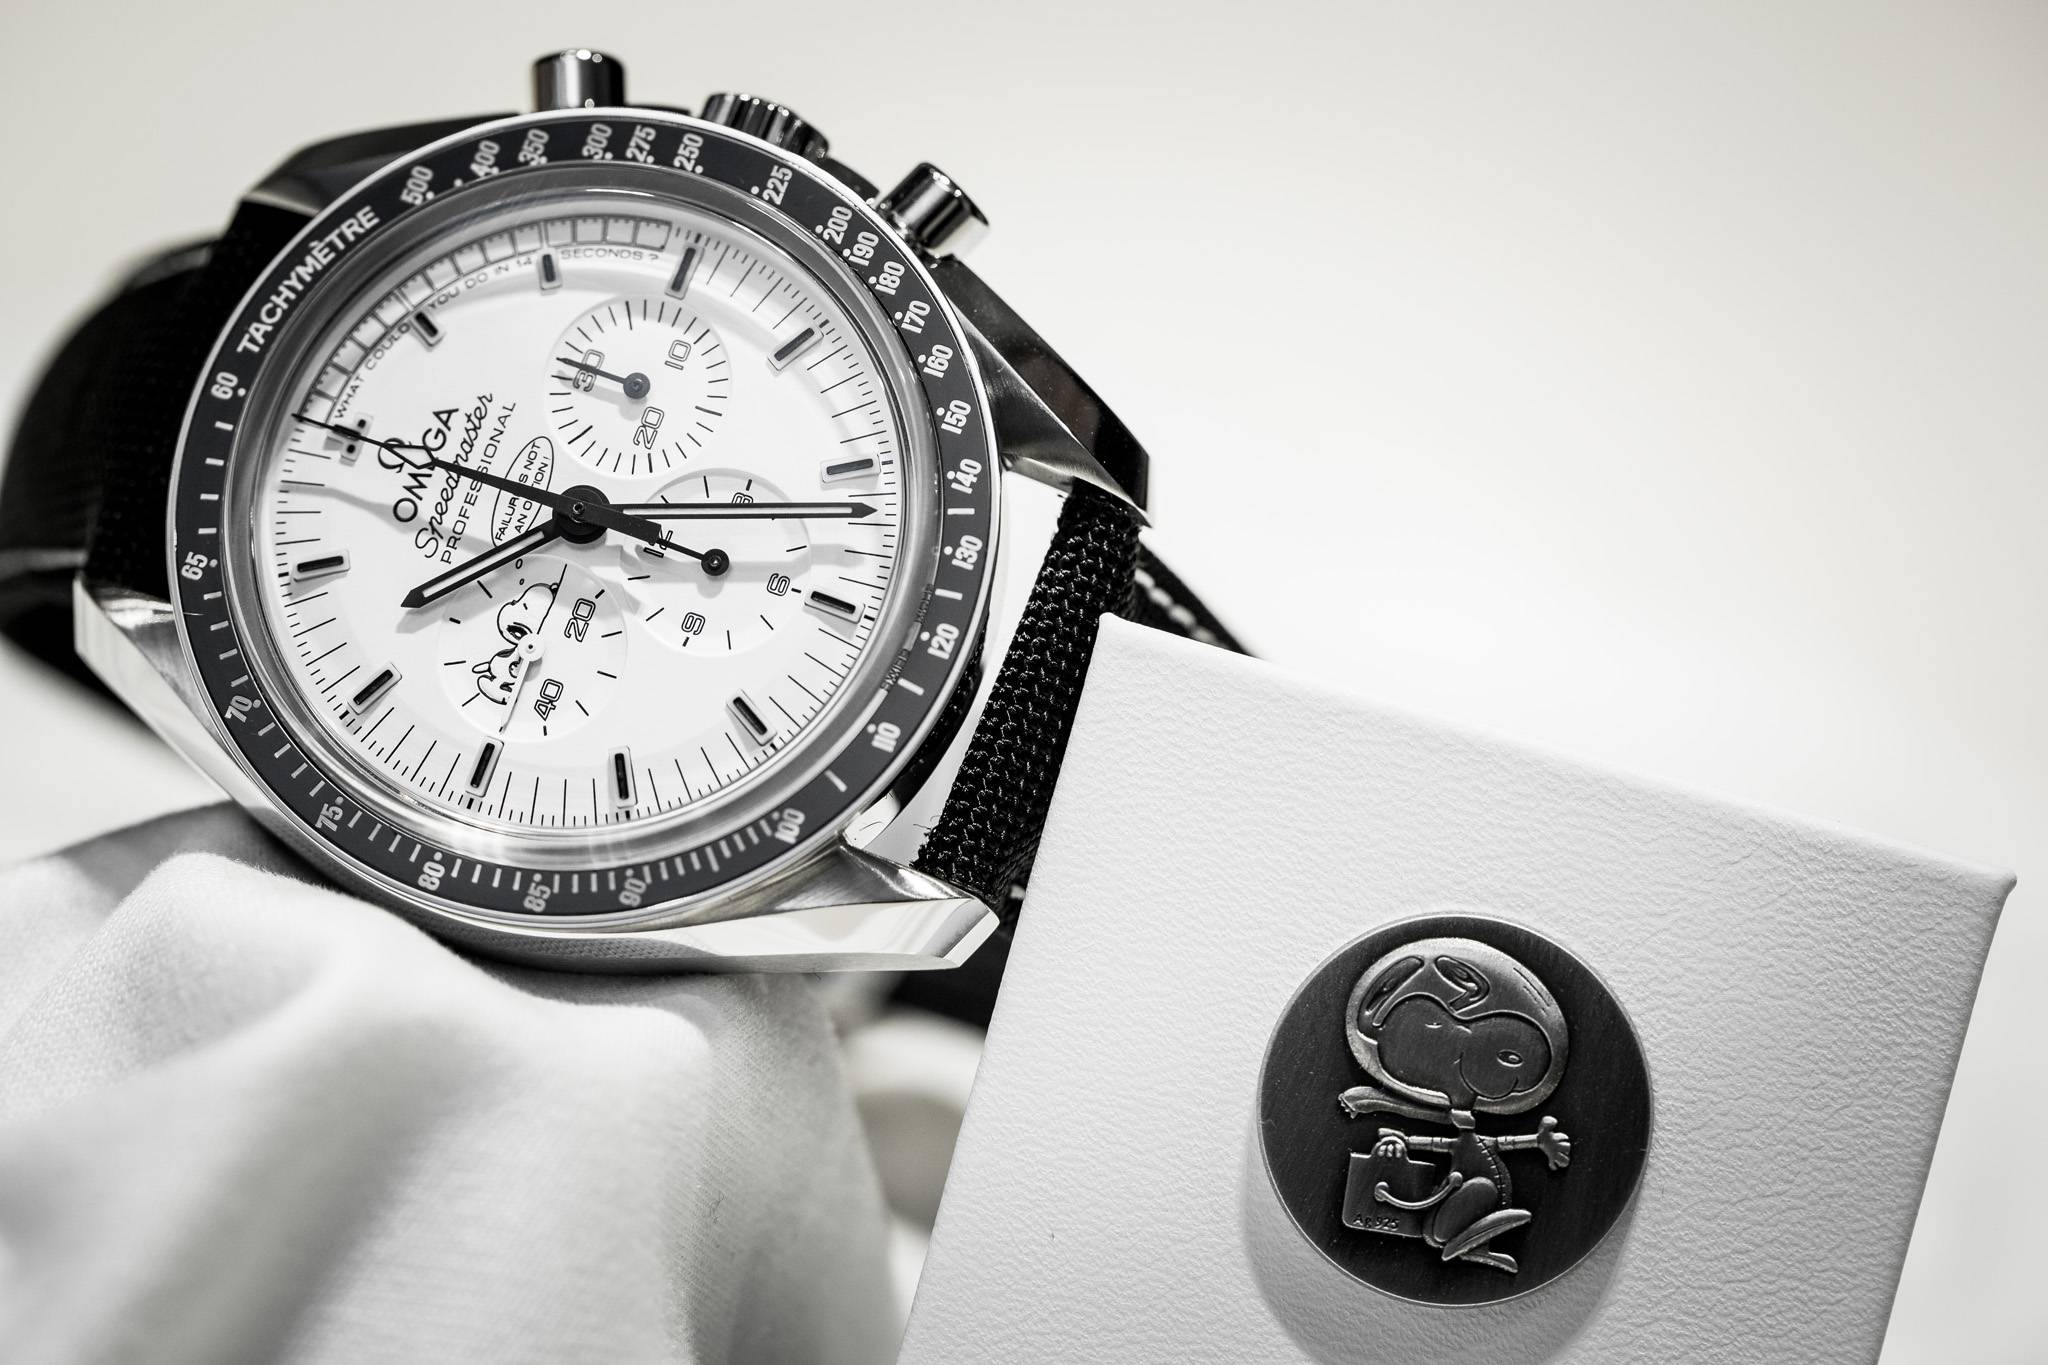 Best Replica Omega Speedmaster Apollo 13 Silver Snoopy Award Limited Edition Watch Front